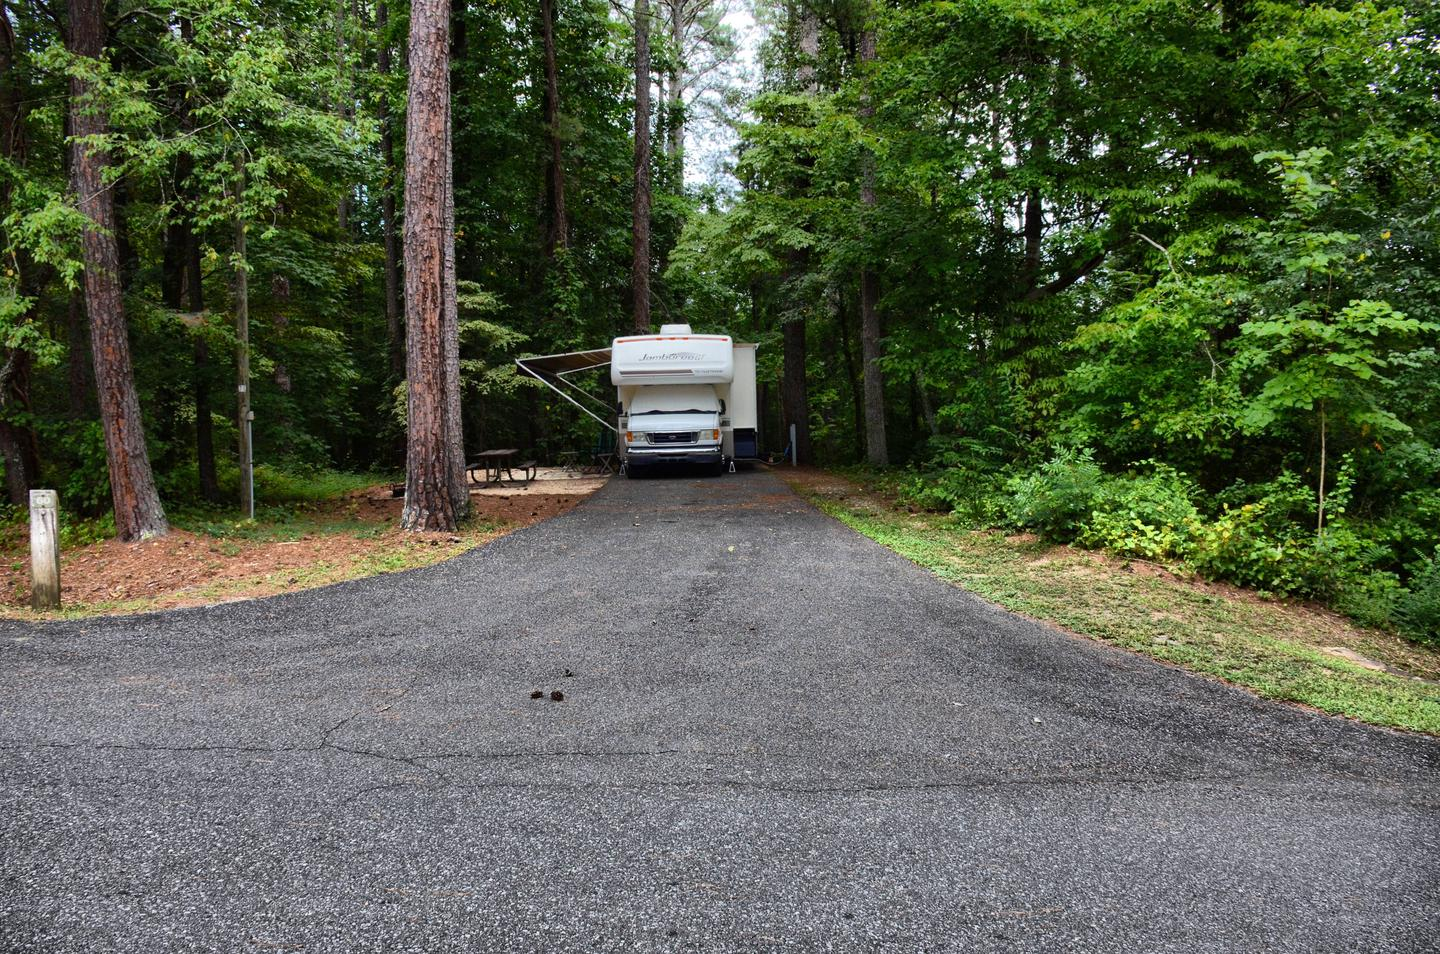 Driveway slope, utilities-side clearancePayne Campground, campsite 60.